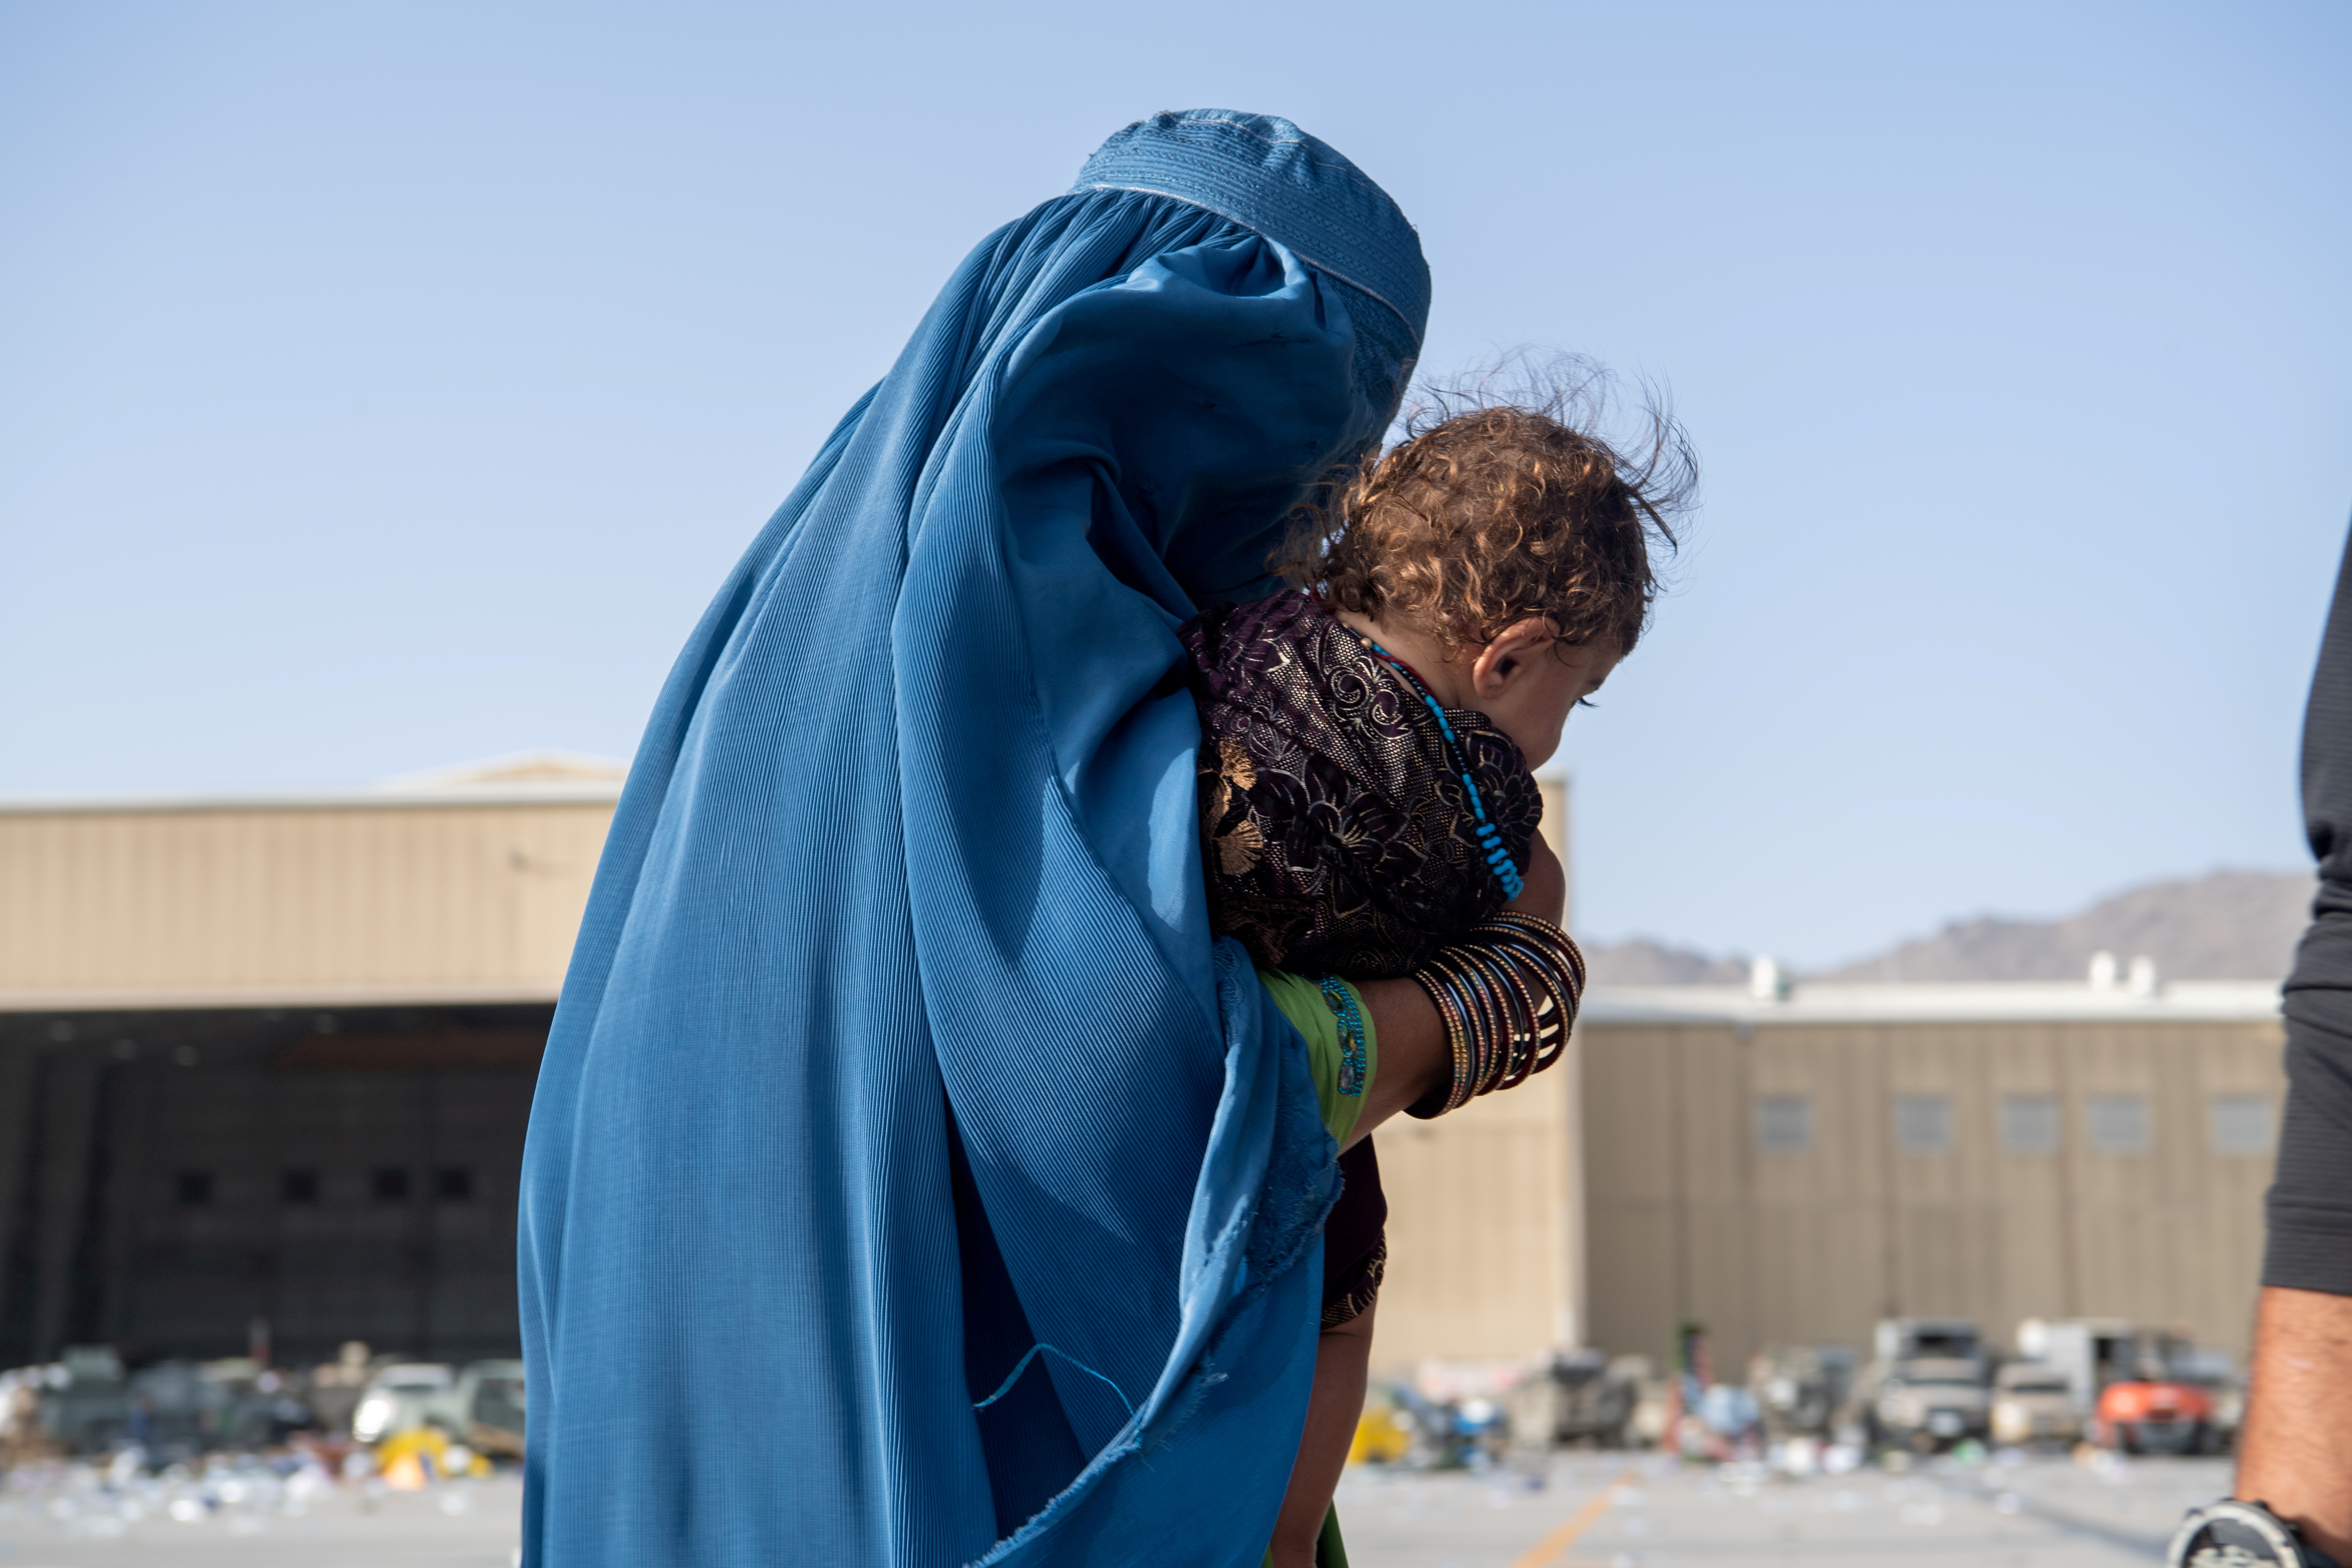 A woman carries a child as passengers board a U.S. Air Force C-17 Globemaster III assigned to the 816th Expeditionary Airlift Squadron in support of the Afghanistan evacuation at Hamid Karzai International Airport in Kabul, Afghanistan, August 24, 2021. Picture taken August 24, 2021. U.S. Air Force/Master Sgt. Donald R. Allen/Handout via REUTERS